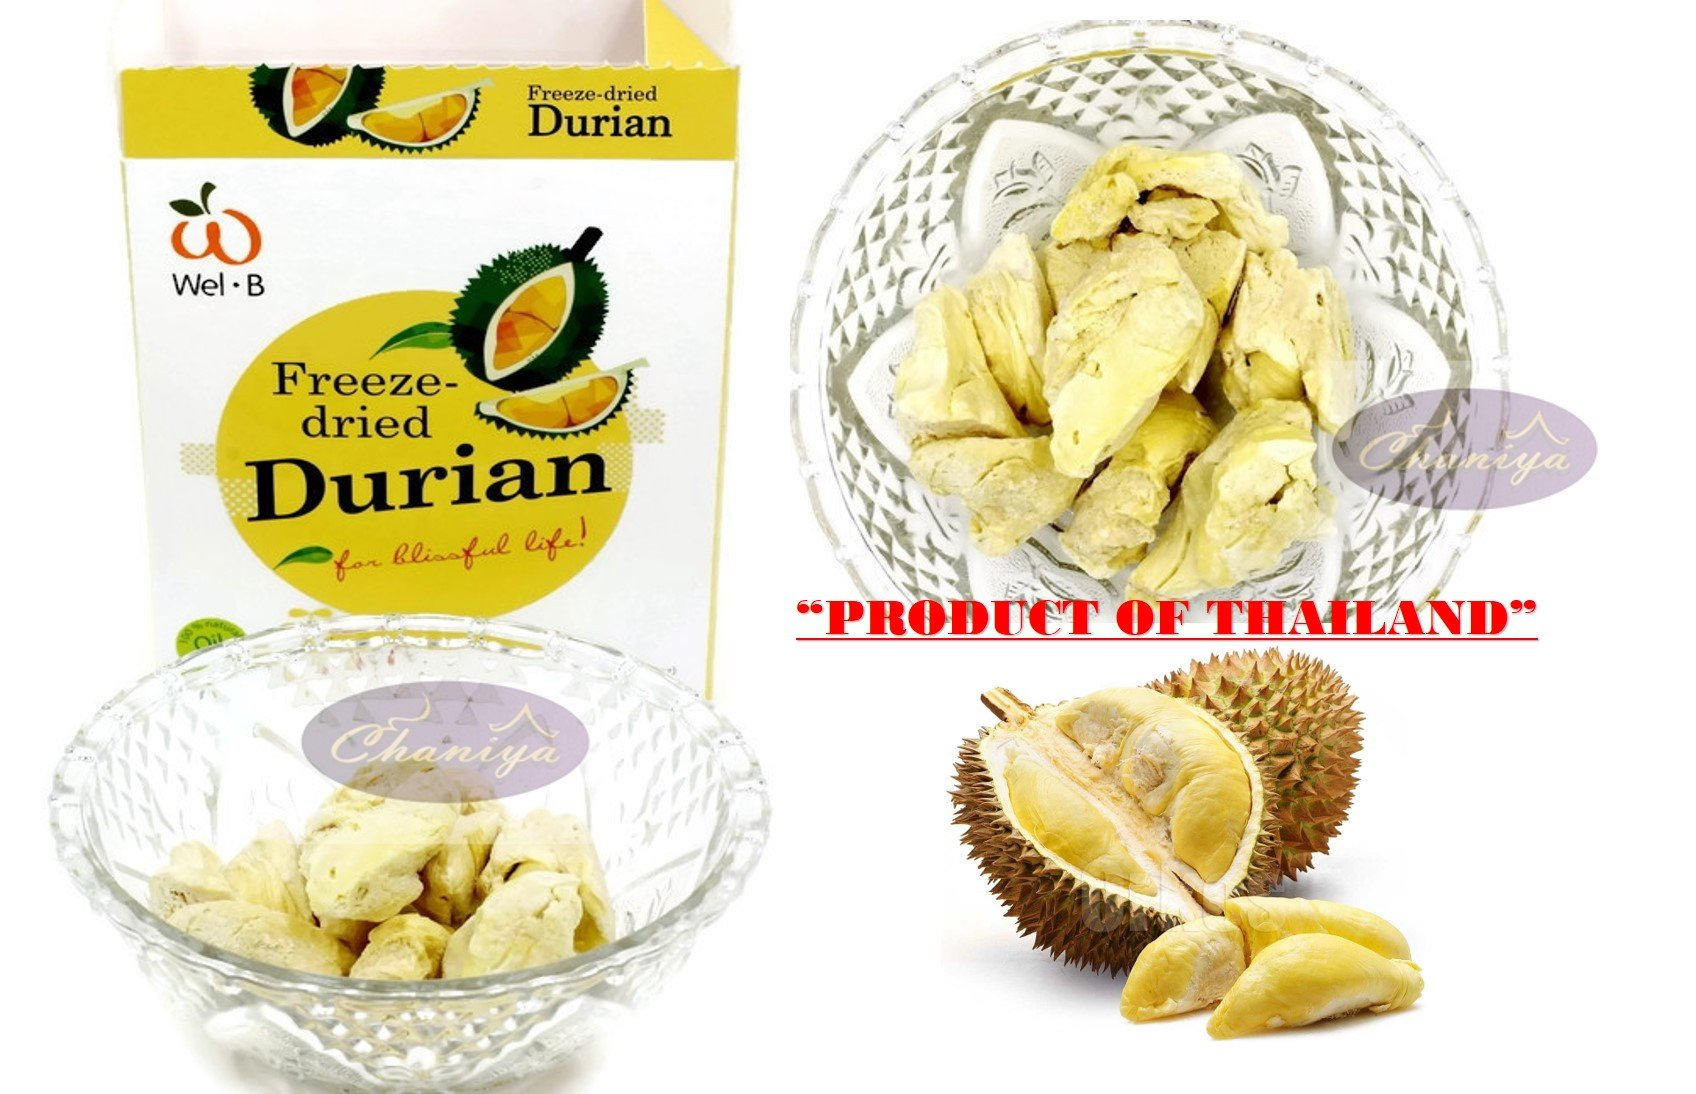 Crispy freeze dried fruit Durian Healthy Snack 100% All Natural Oil-Free 30g. (1.06 Oz)